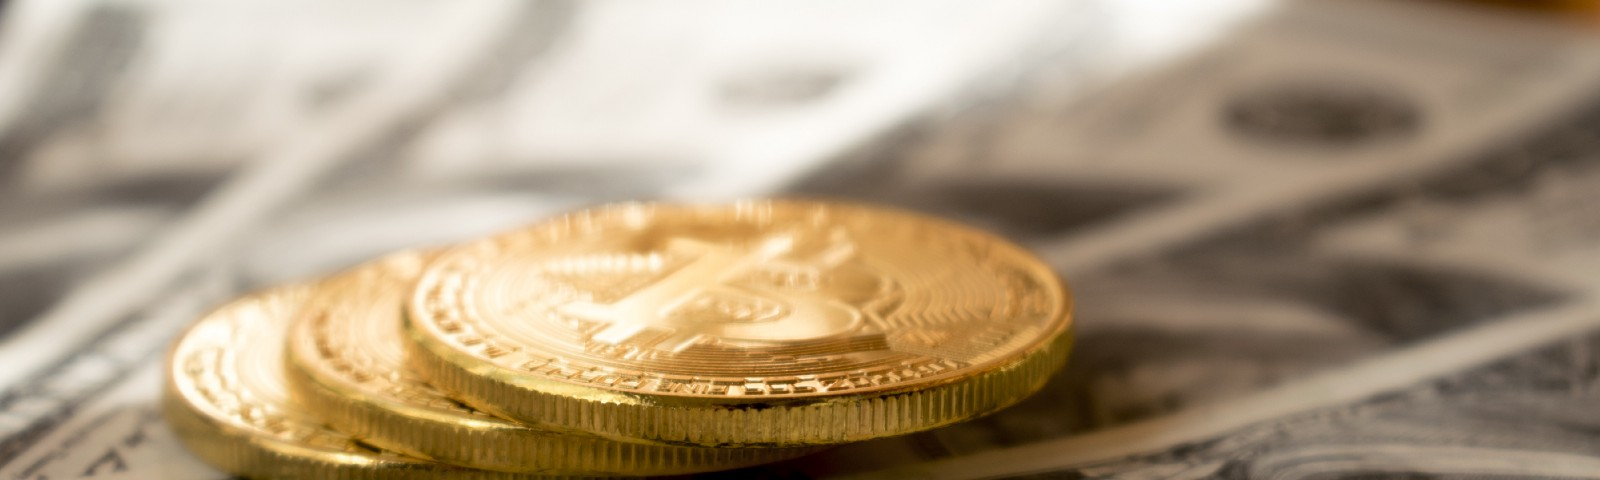 A picture of some dollar and coin